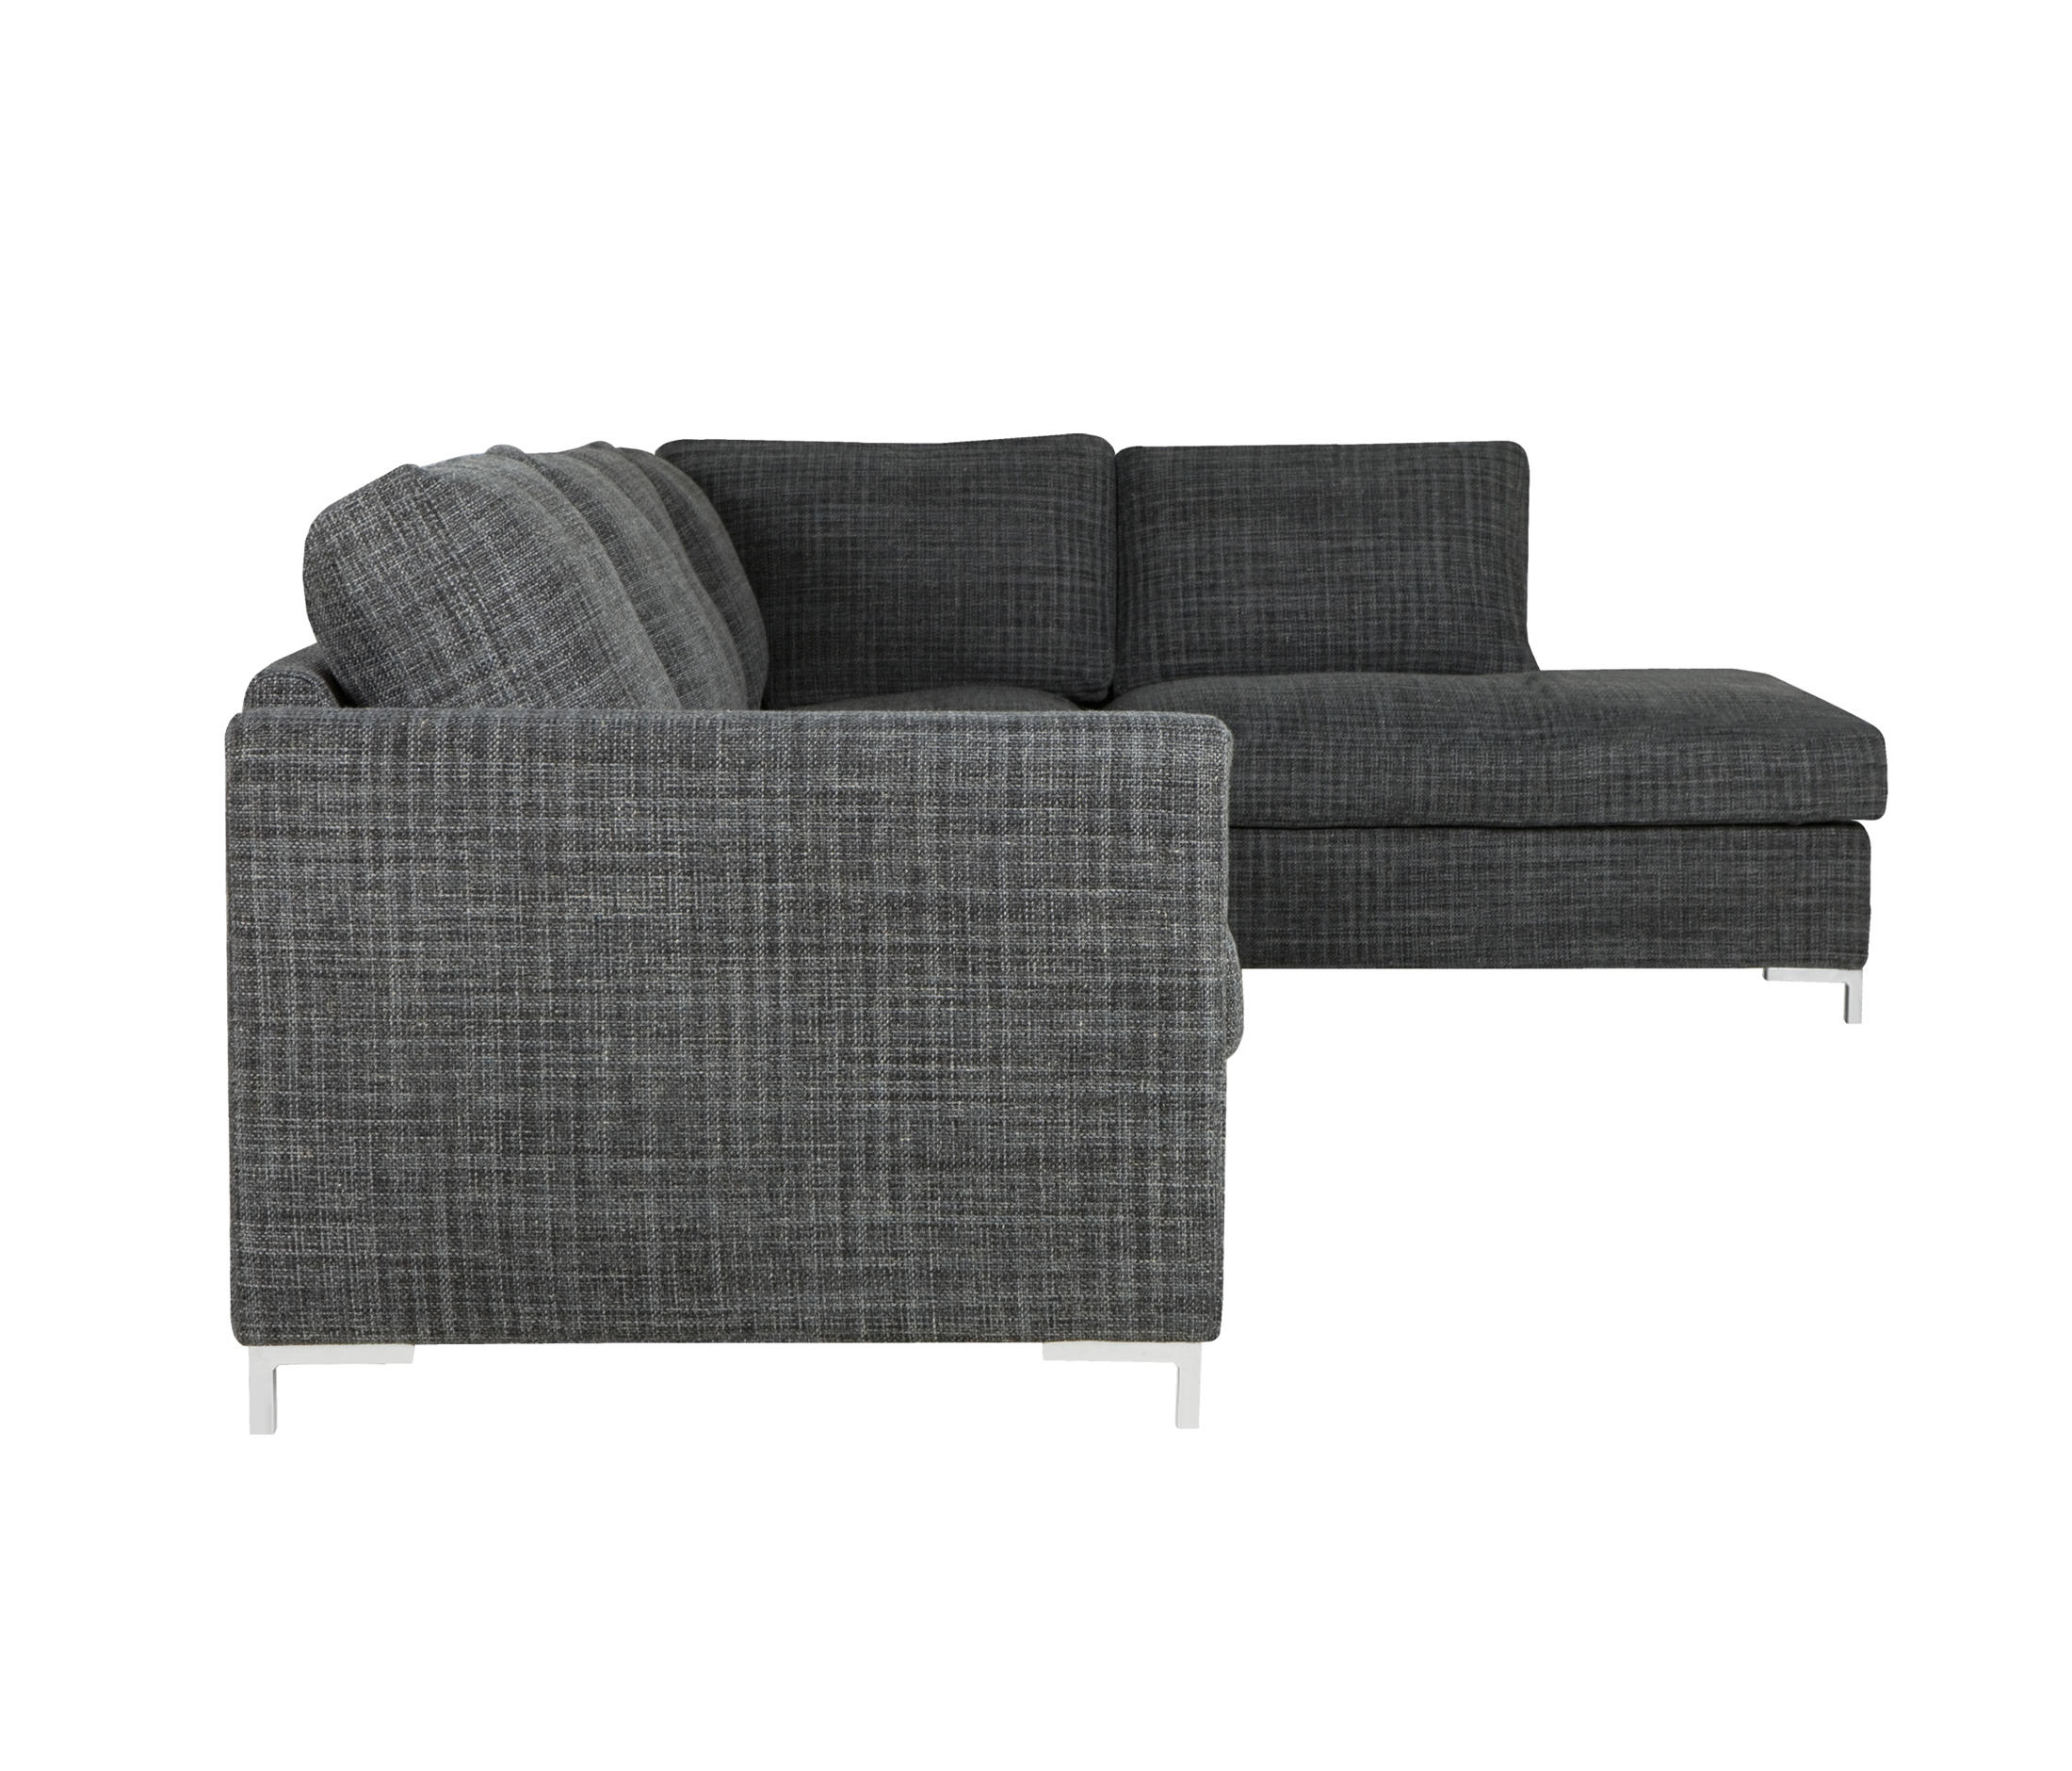 Sofa Palma 8ydm Palma sofas From Sits Architonic